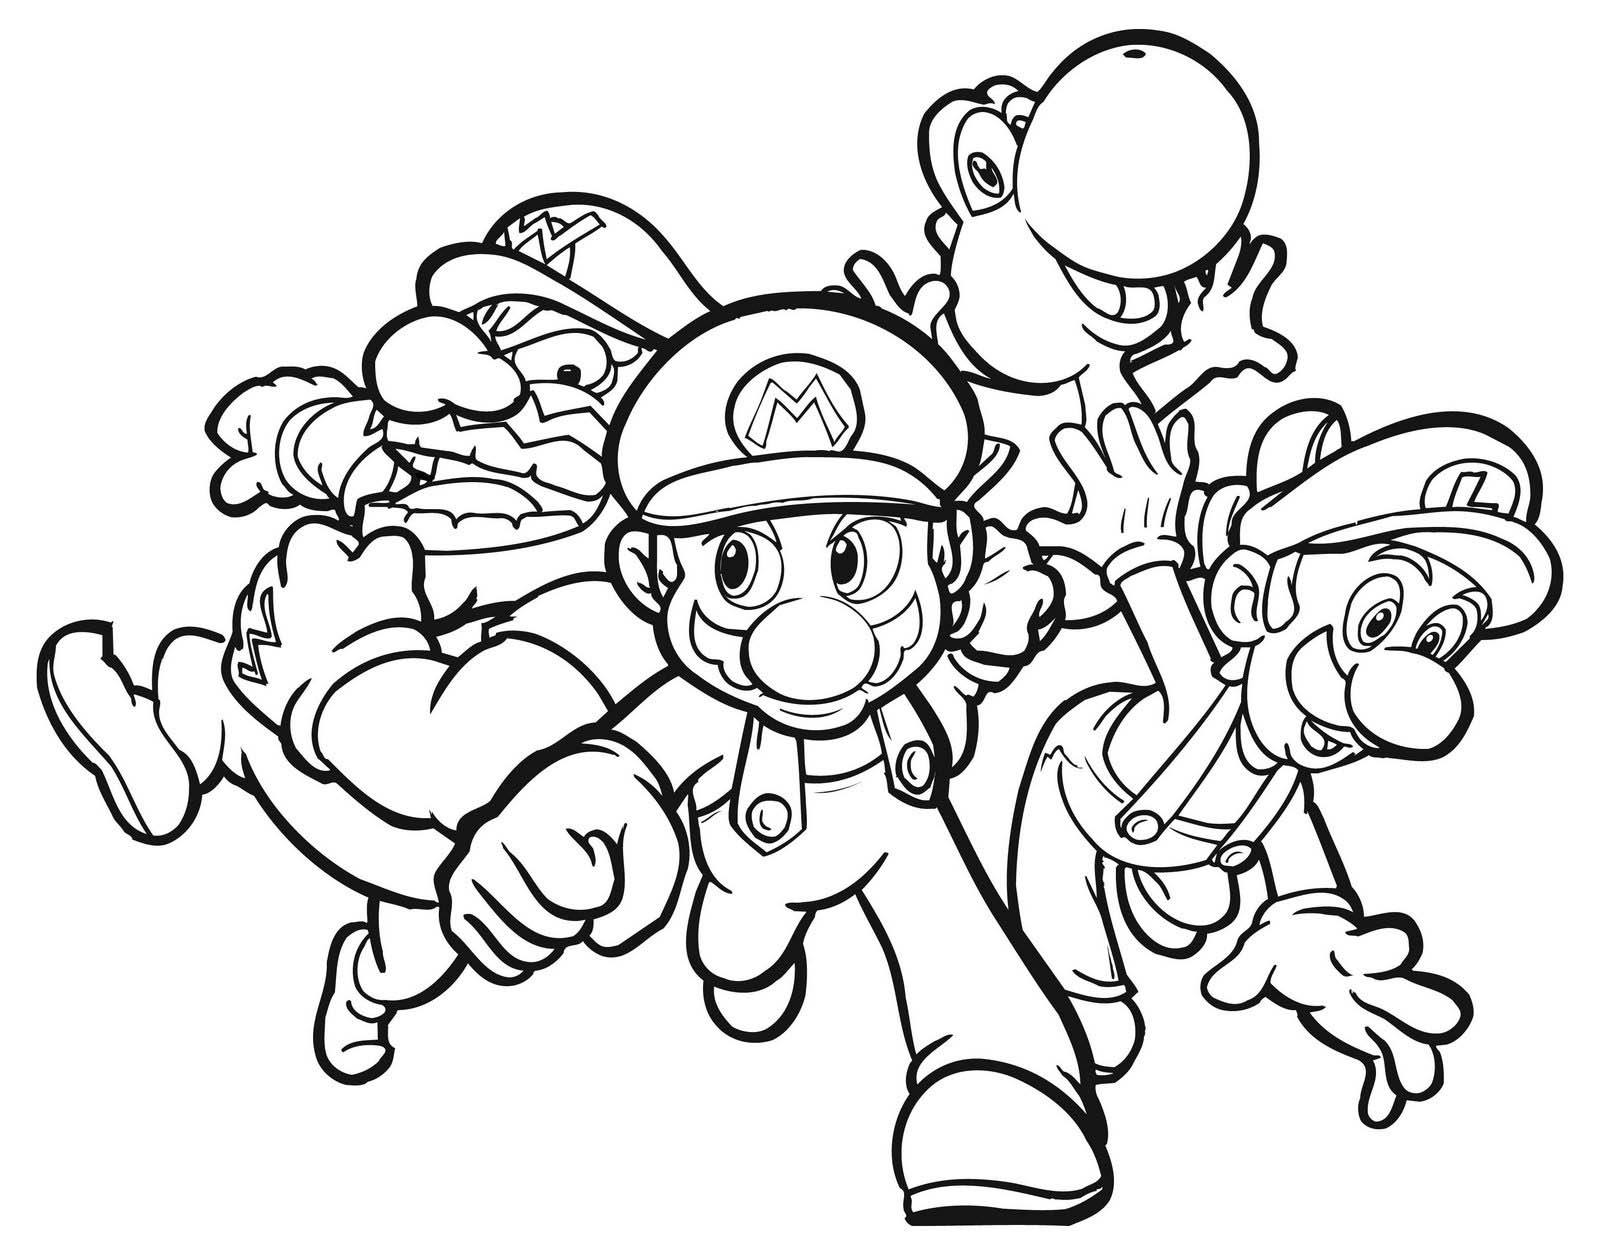 Mario Kart Coloring Pages - Best Coloring Pages For Kids - Mario Coloring Pages Free Printable